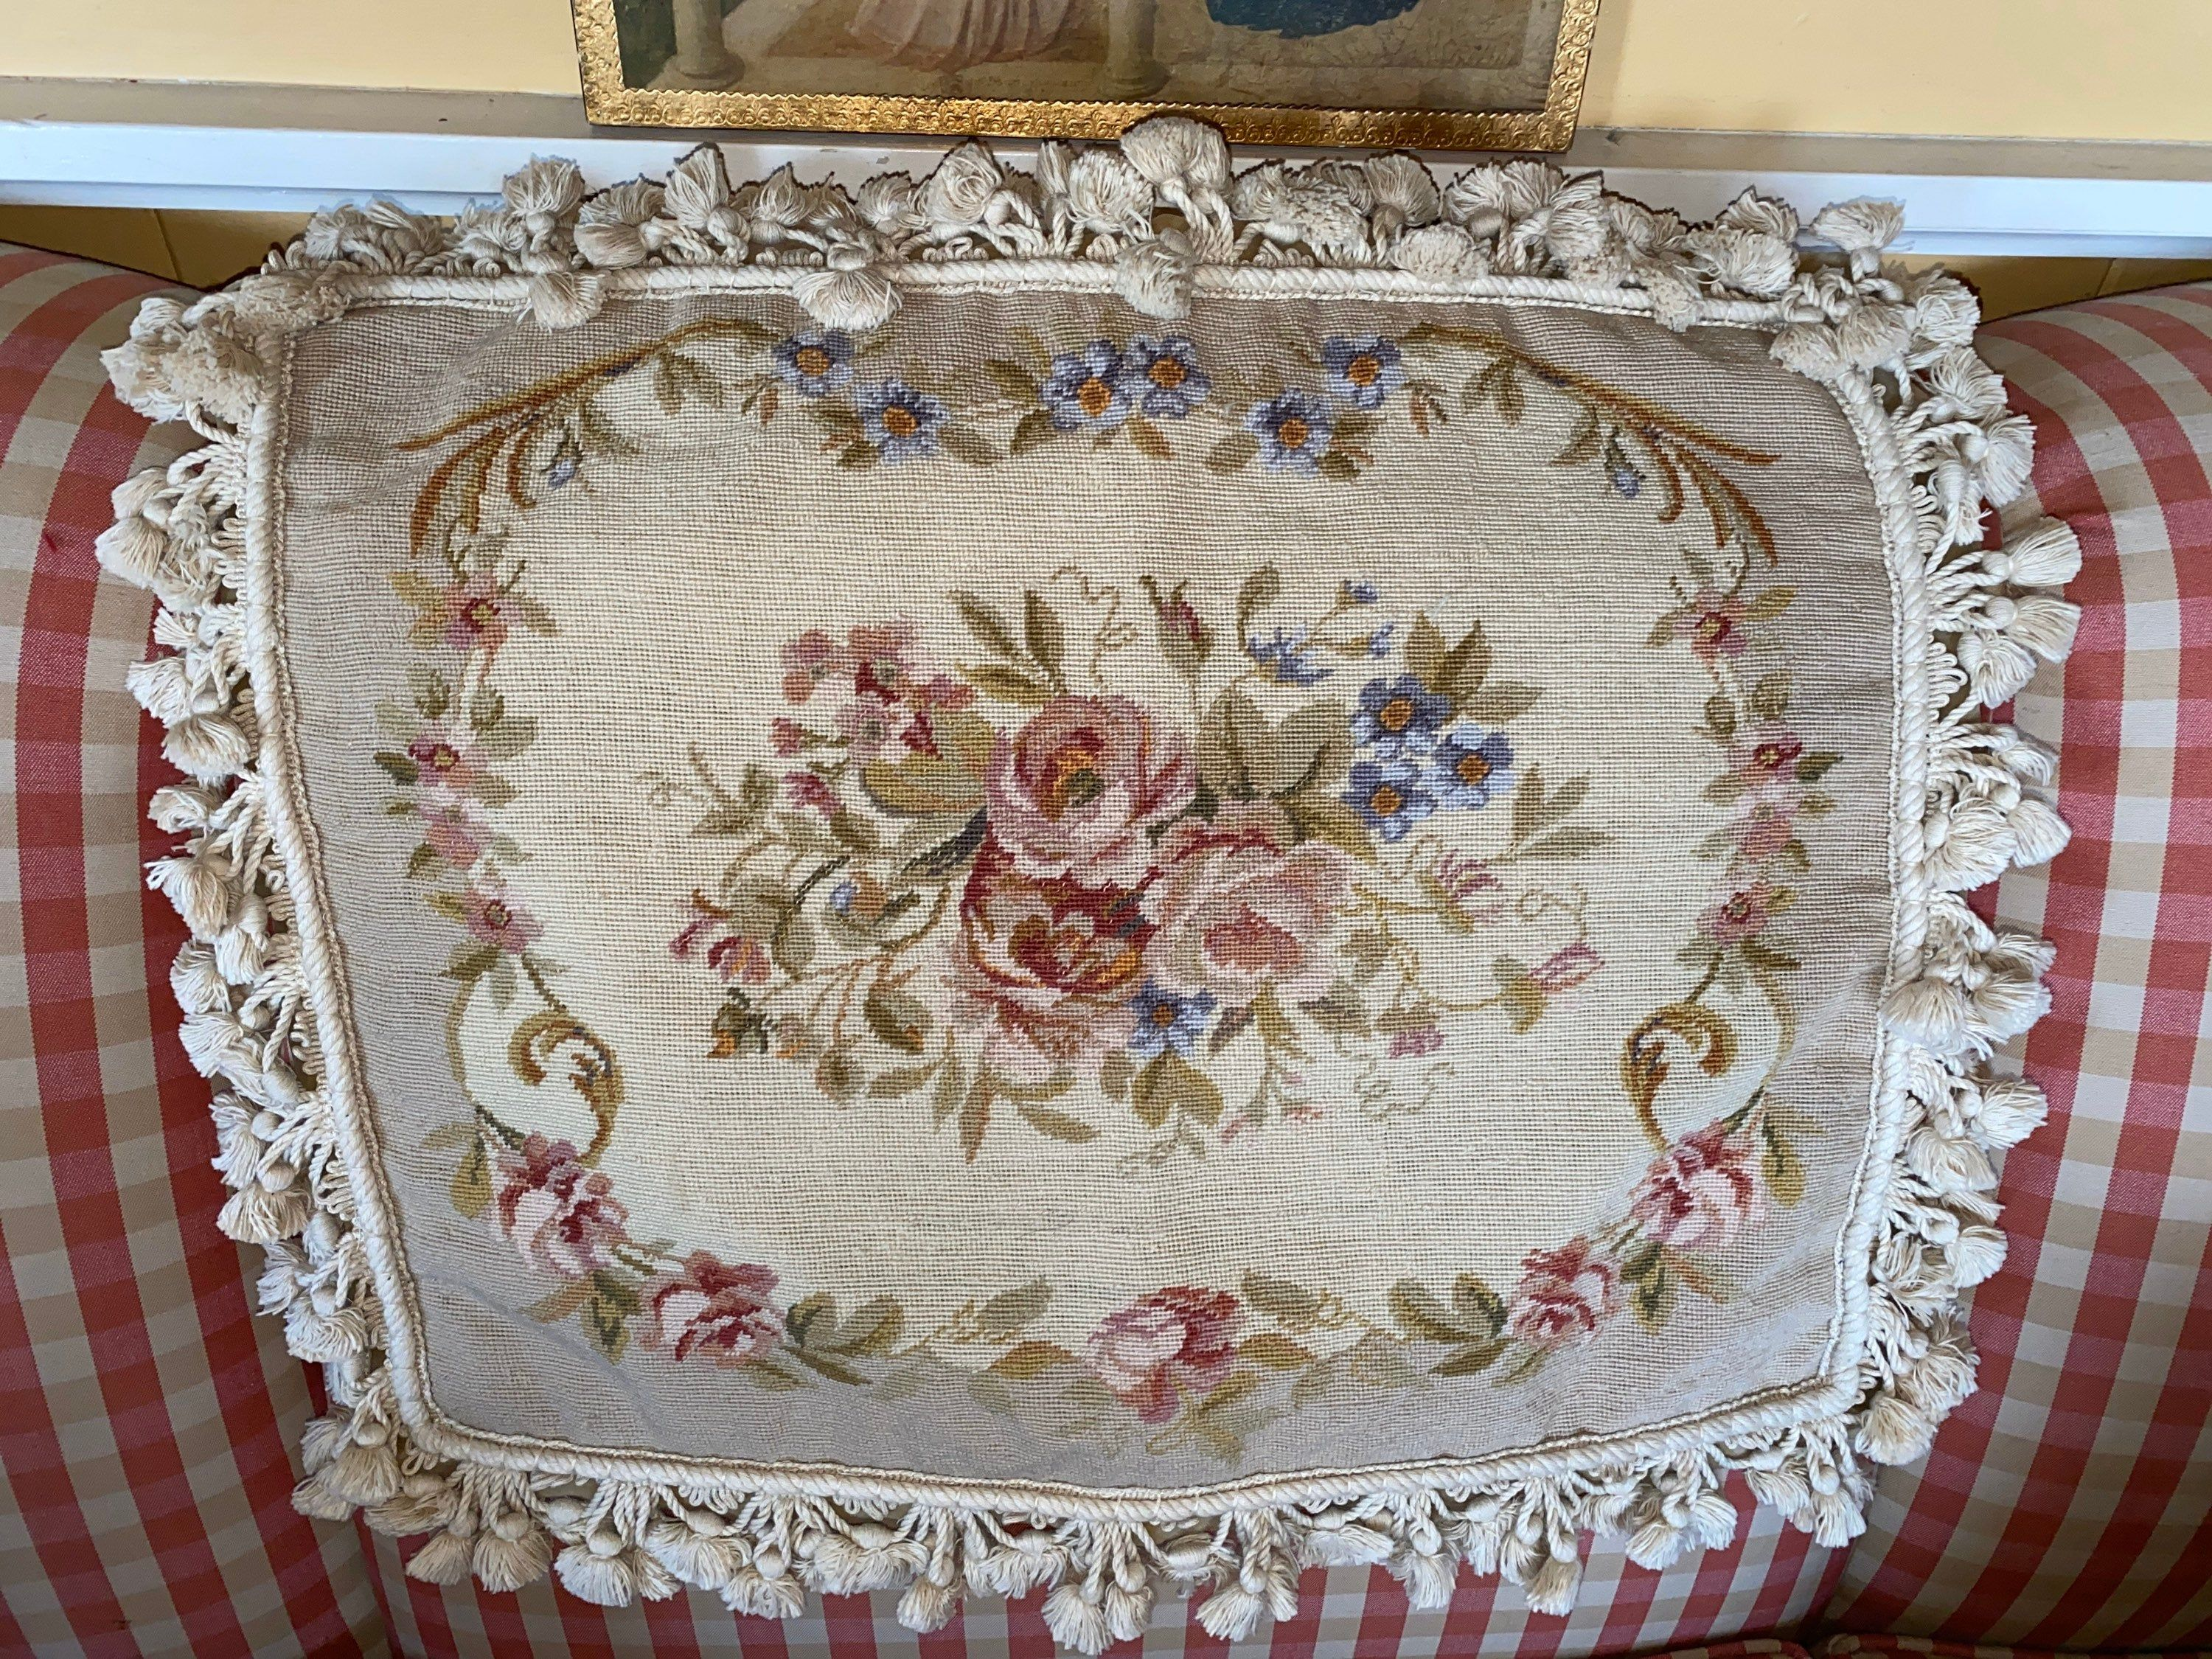 French Chic Aubusson Petit point Needlepoint Tassel Fringe Floral Pillow